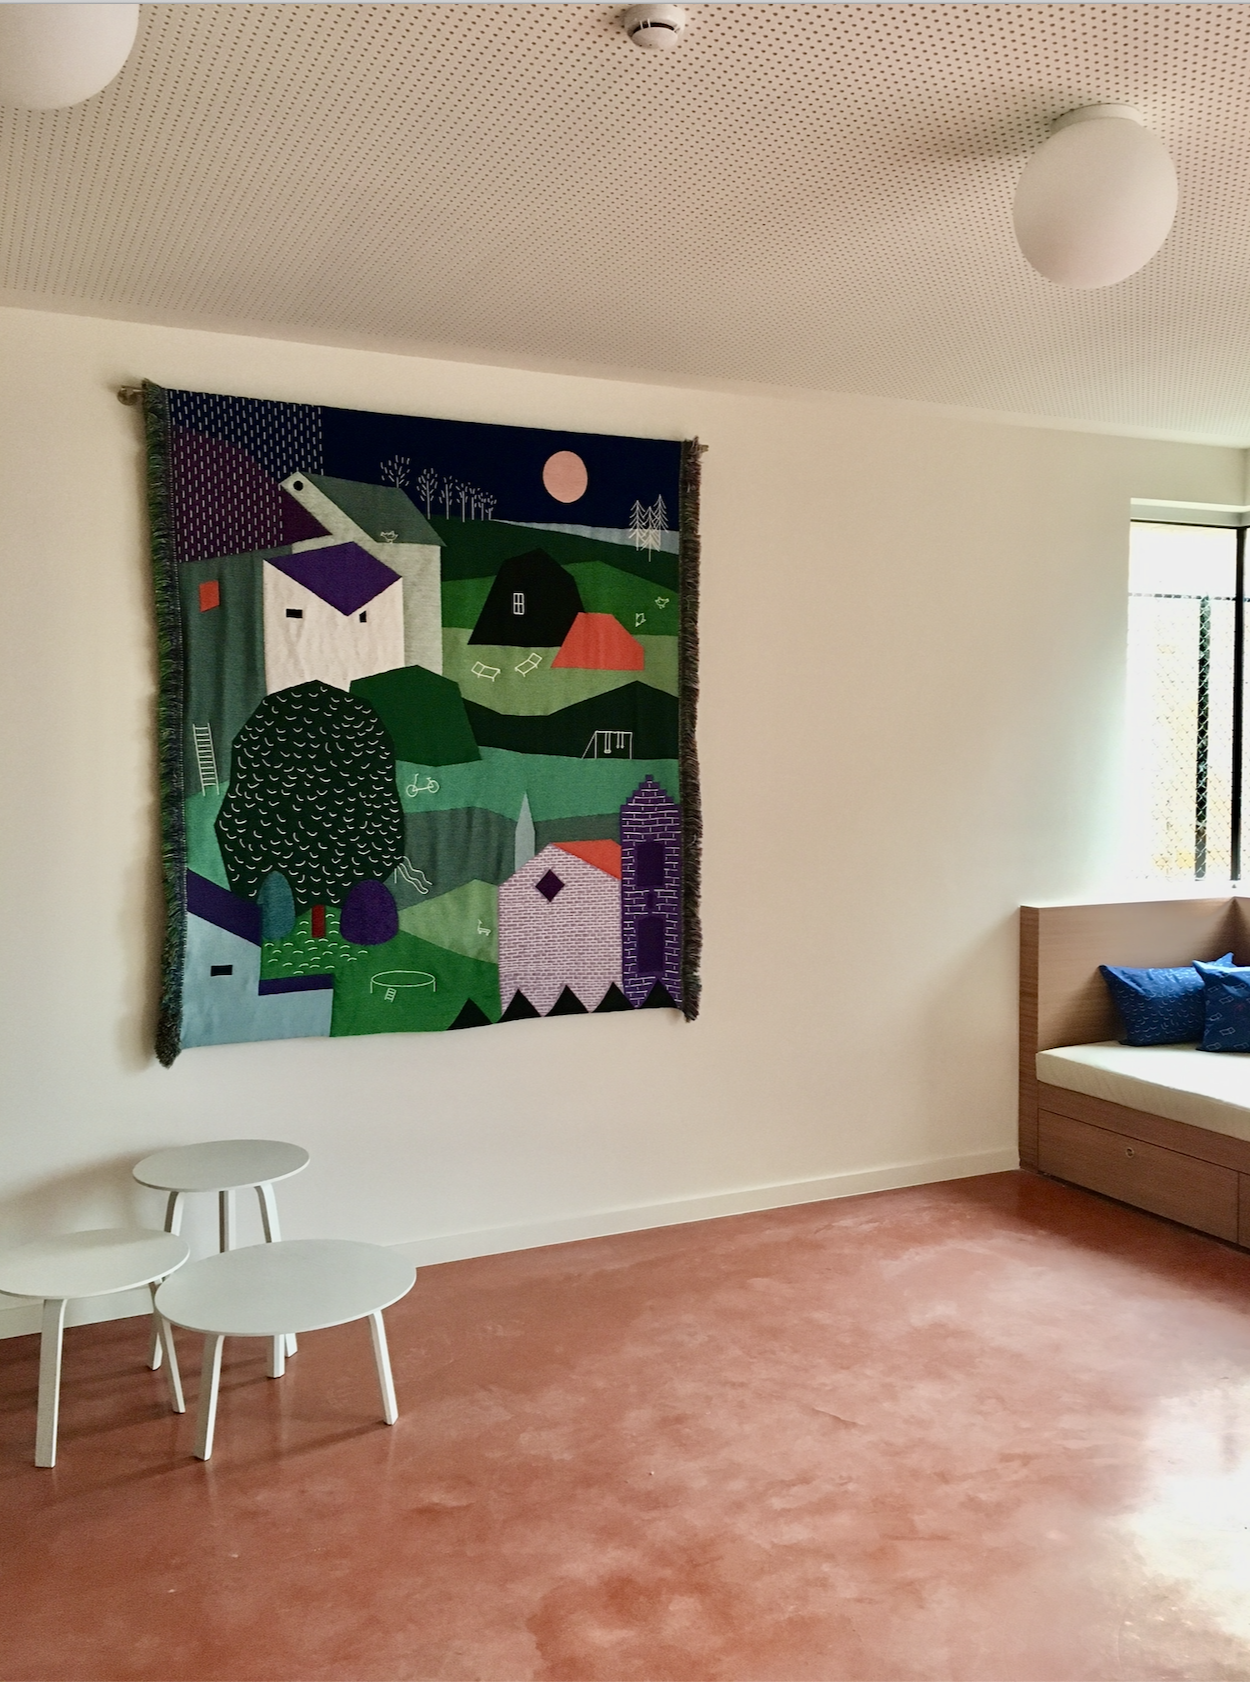 Interior with focus on woven wall hanging with landscape.